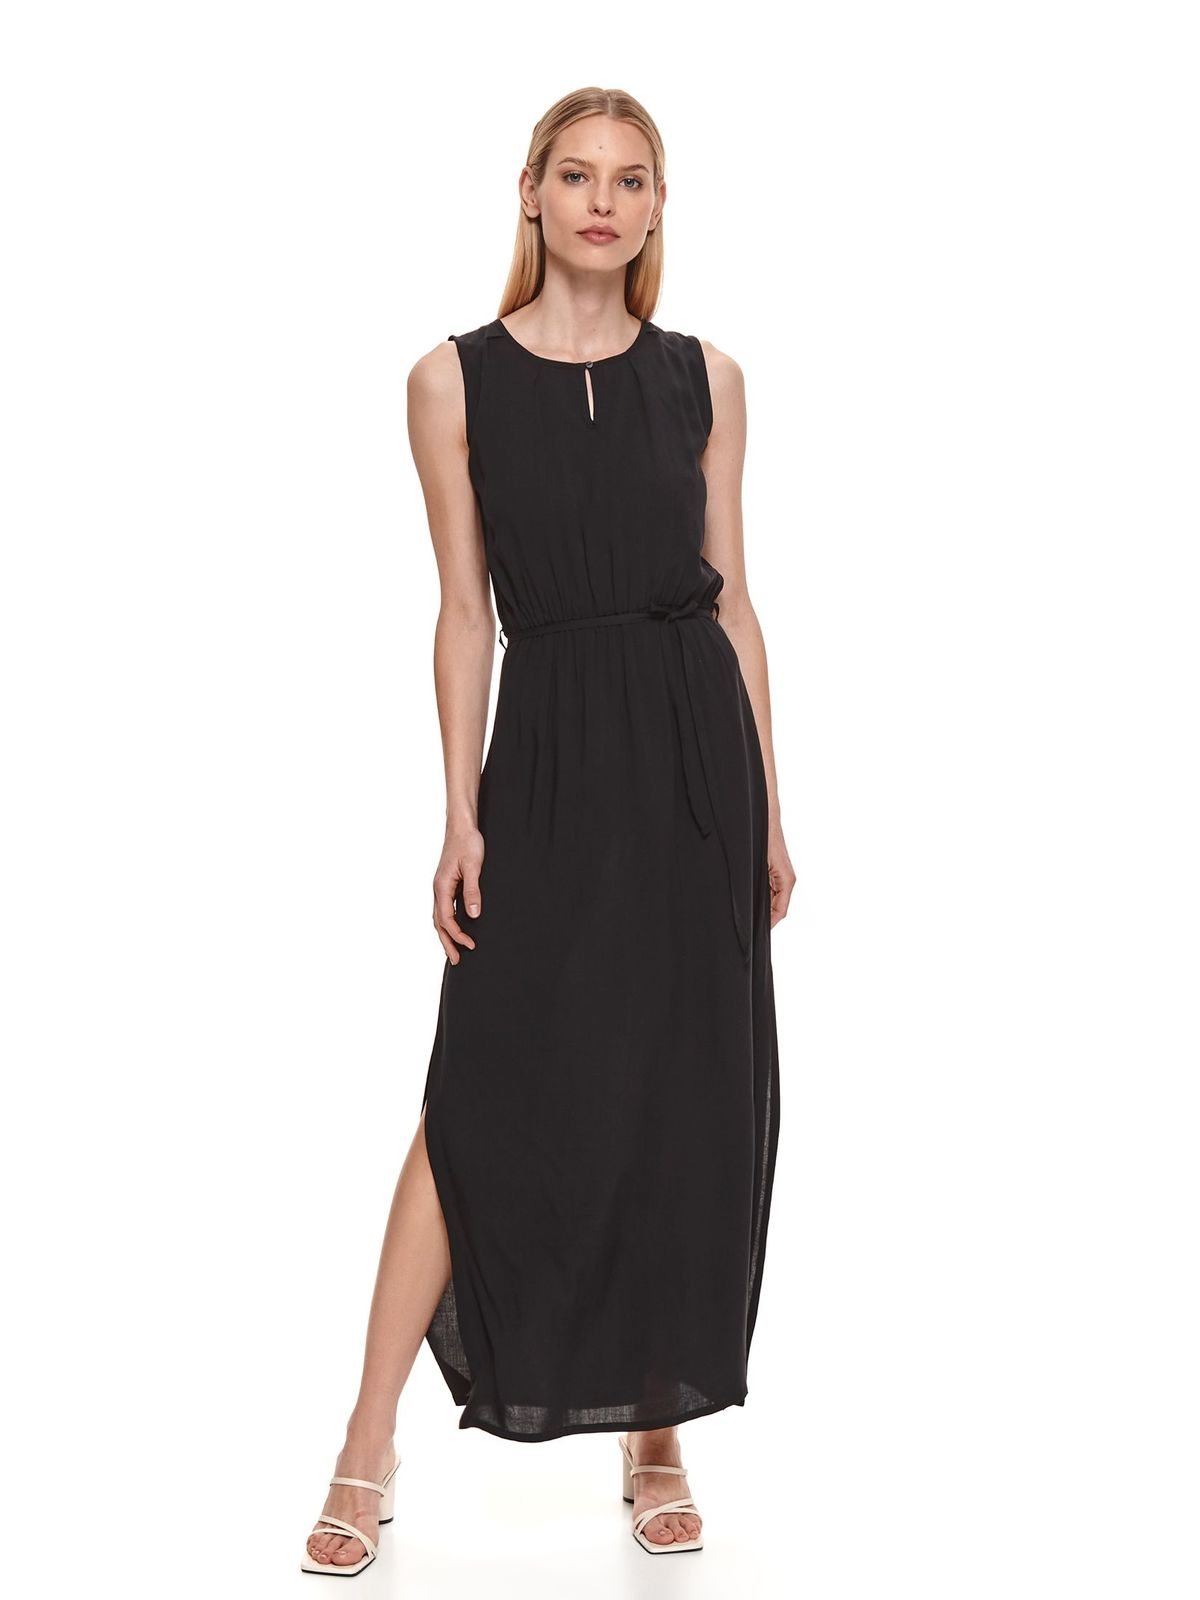 Black dress casual long cloche sleeveless is fastened around the waist with a ribbon